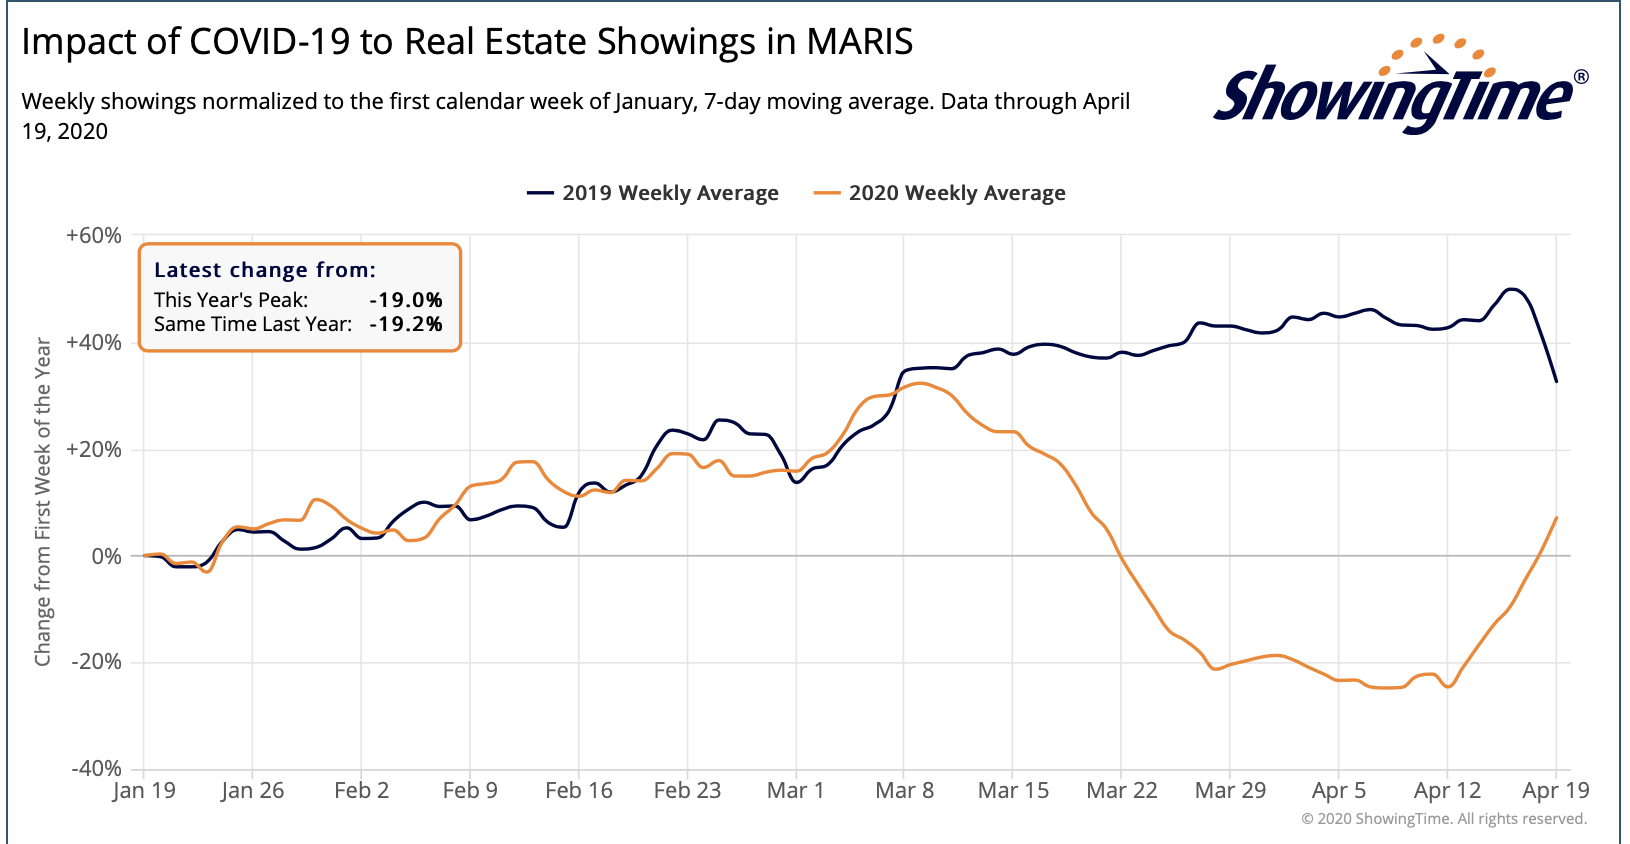 Showings in St Louis metro area along with other markets served by MARIS